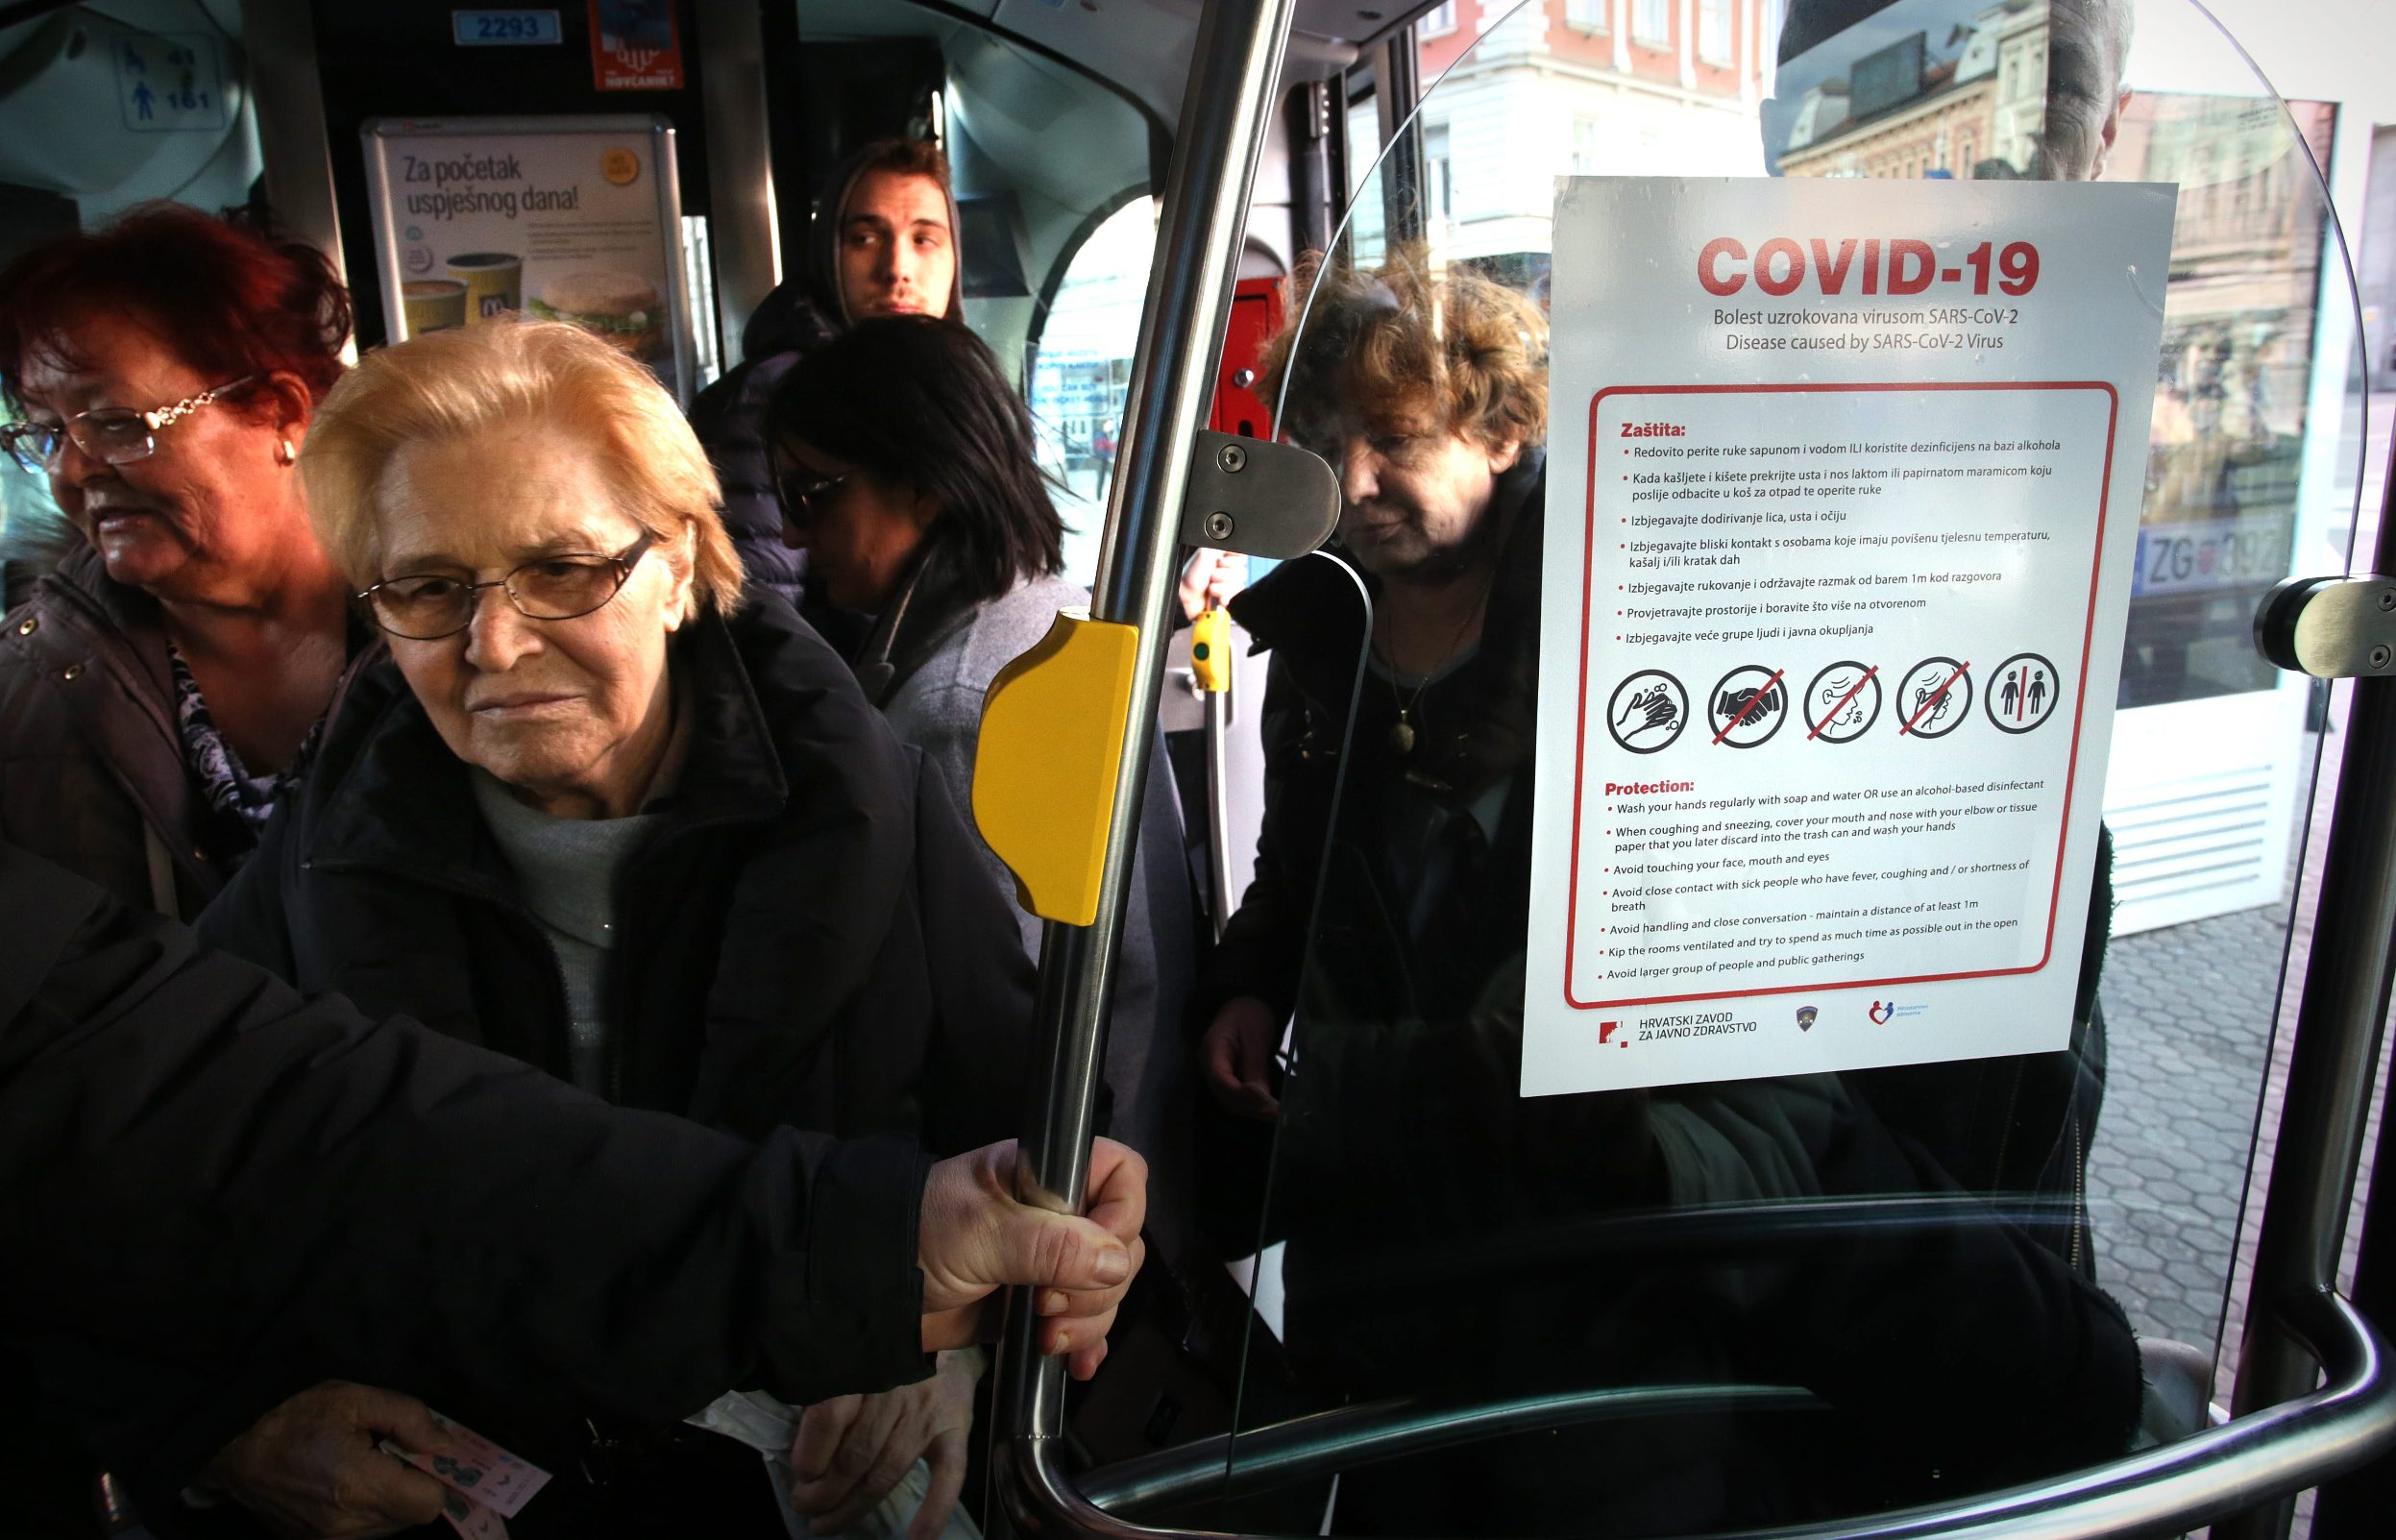 Prevention signs in the public transport